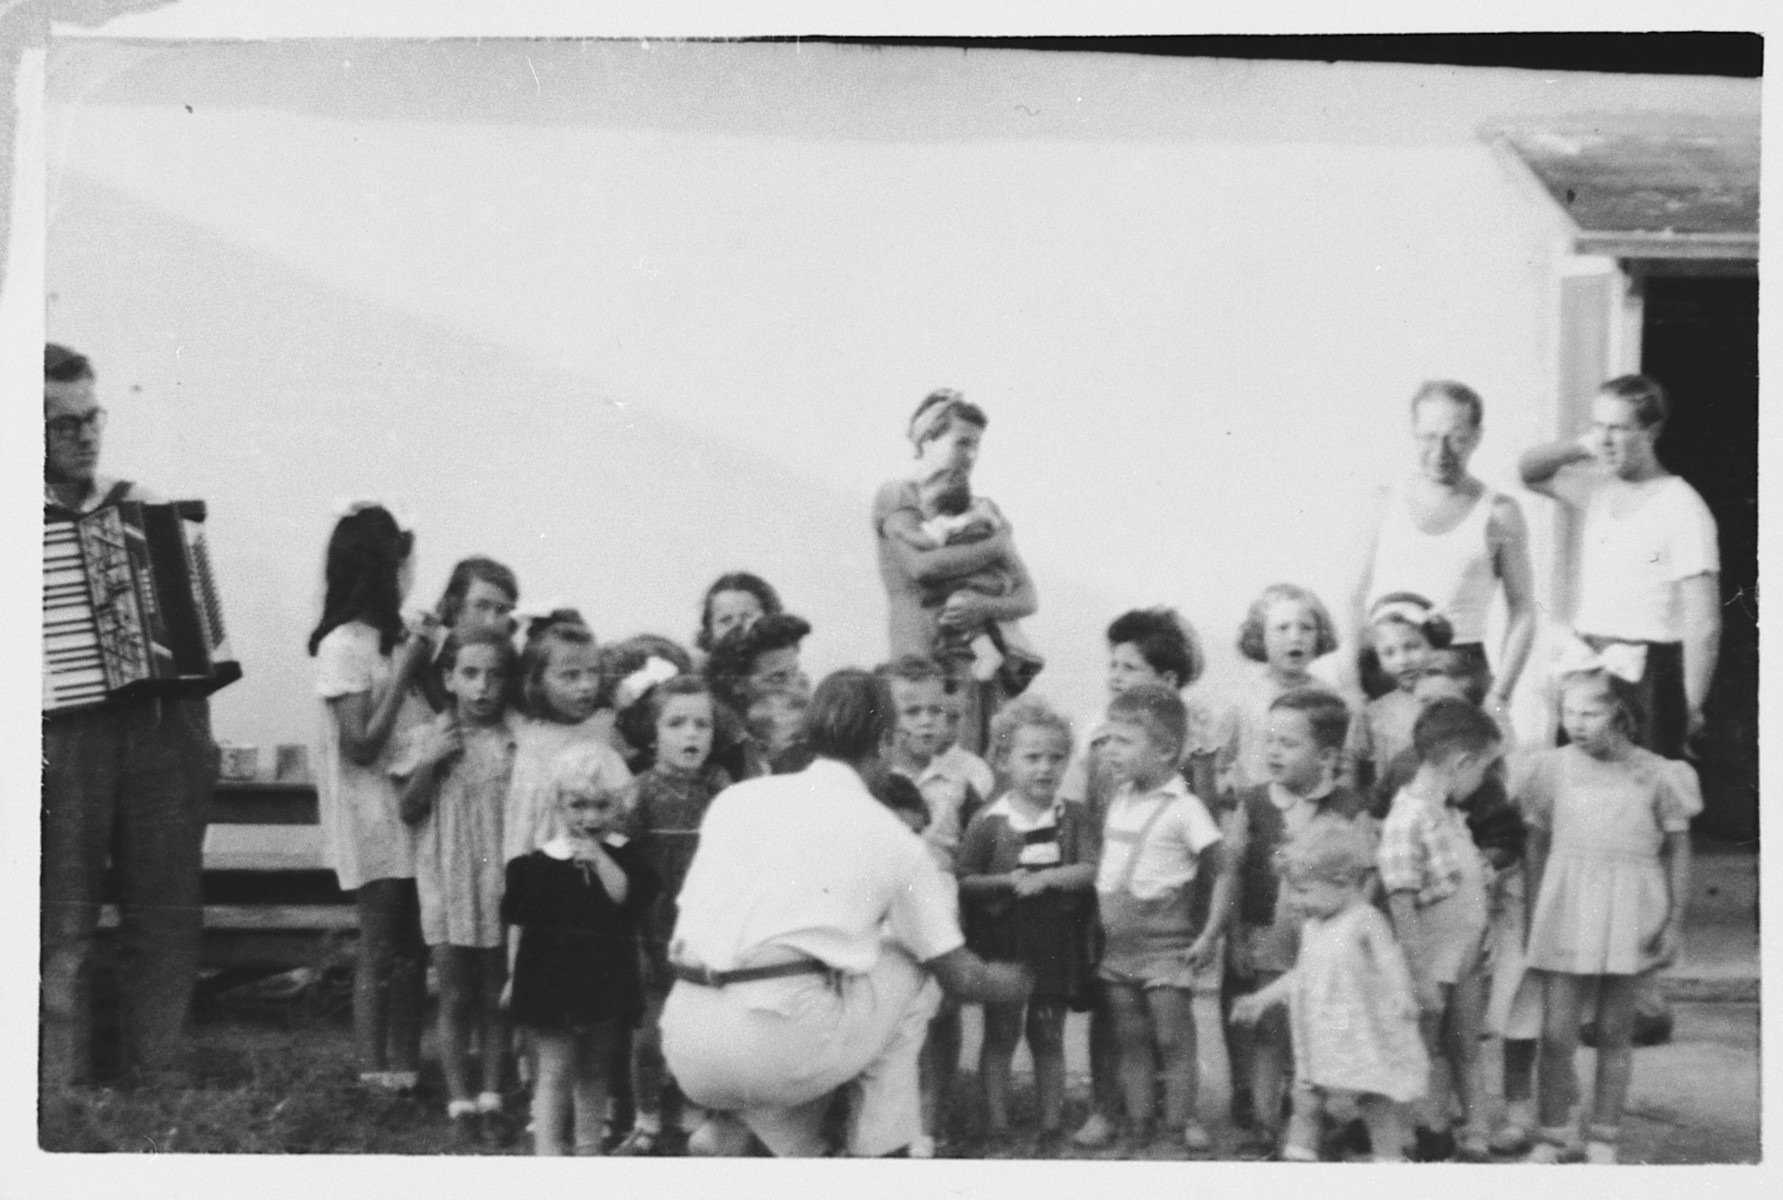 A man with an accordian accompanies a group of young children in song in the Ferramonti internment camp.  This photograph was taken during the first of three visit by Rabbi Riccardo Pacifici to the internees.  His last visit was in August 1943.